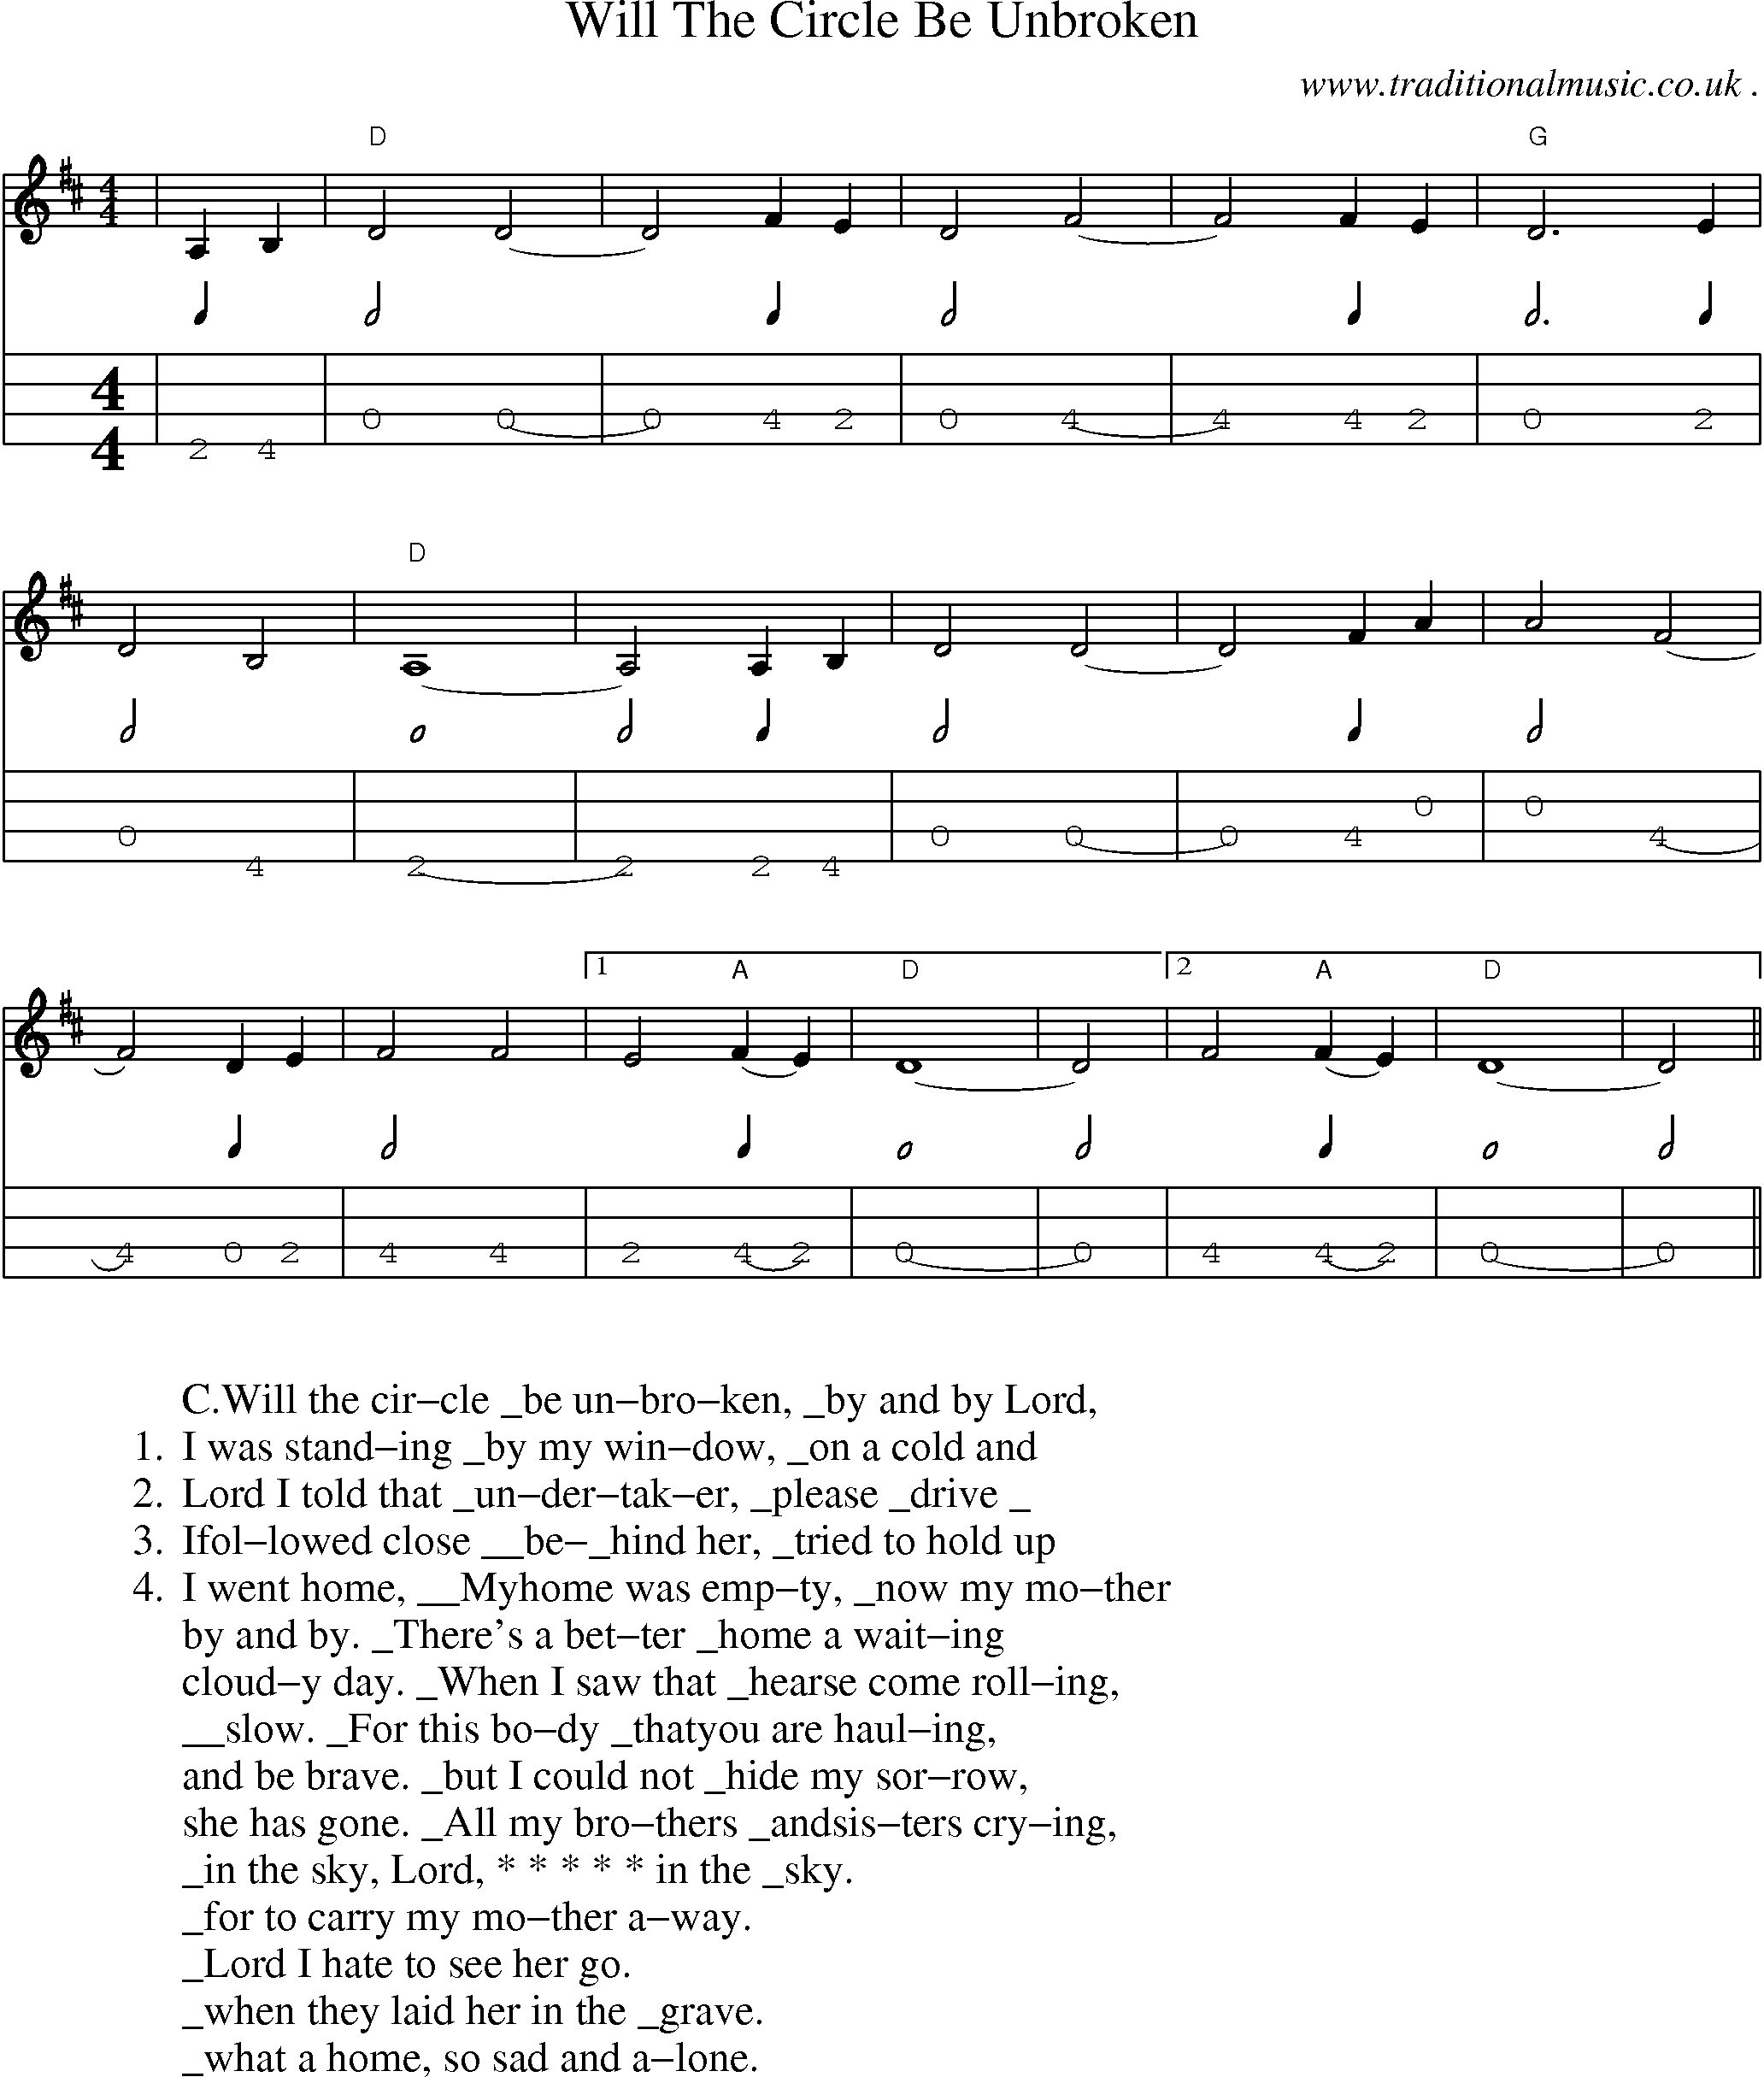 Mandolin chords will the circle be unbroken music sheets chords american old time music scores and tabs for mandolin will the circle be hexwebz Image collections